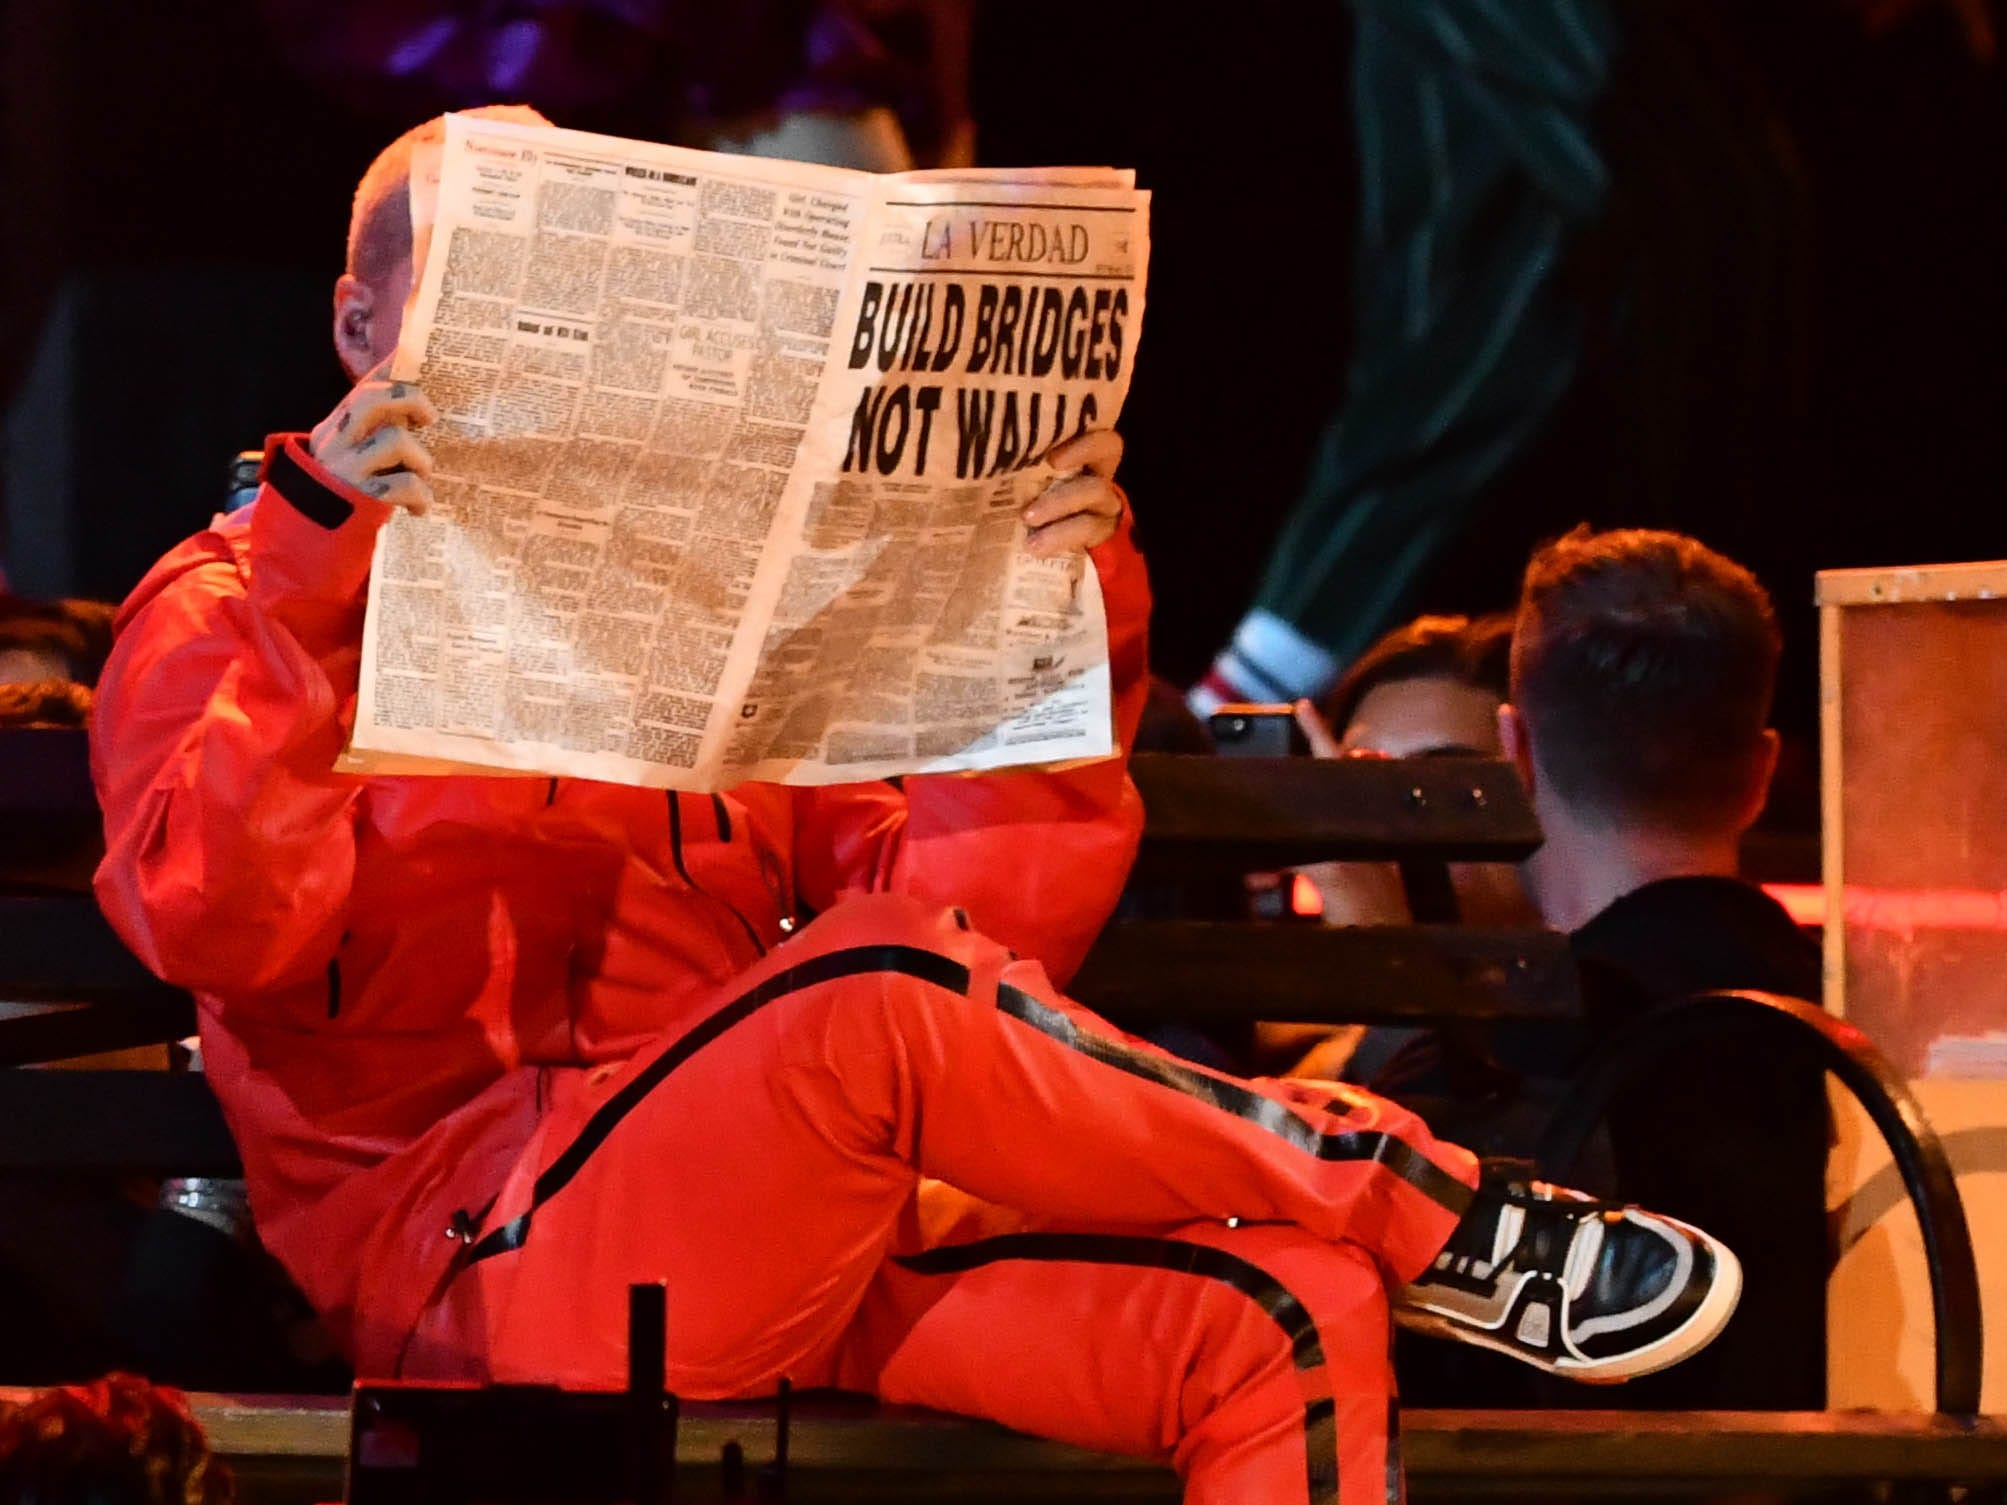 View of a newspaper held by J Balvin during a performance in the 61st Annual GRAMMY Awards on Feb. 10, 2019 at STAPLES Center in Los Angeles, Calif.